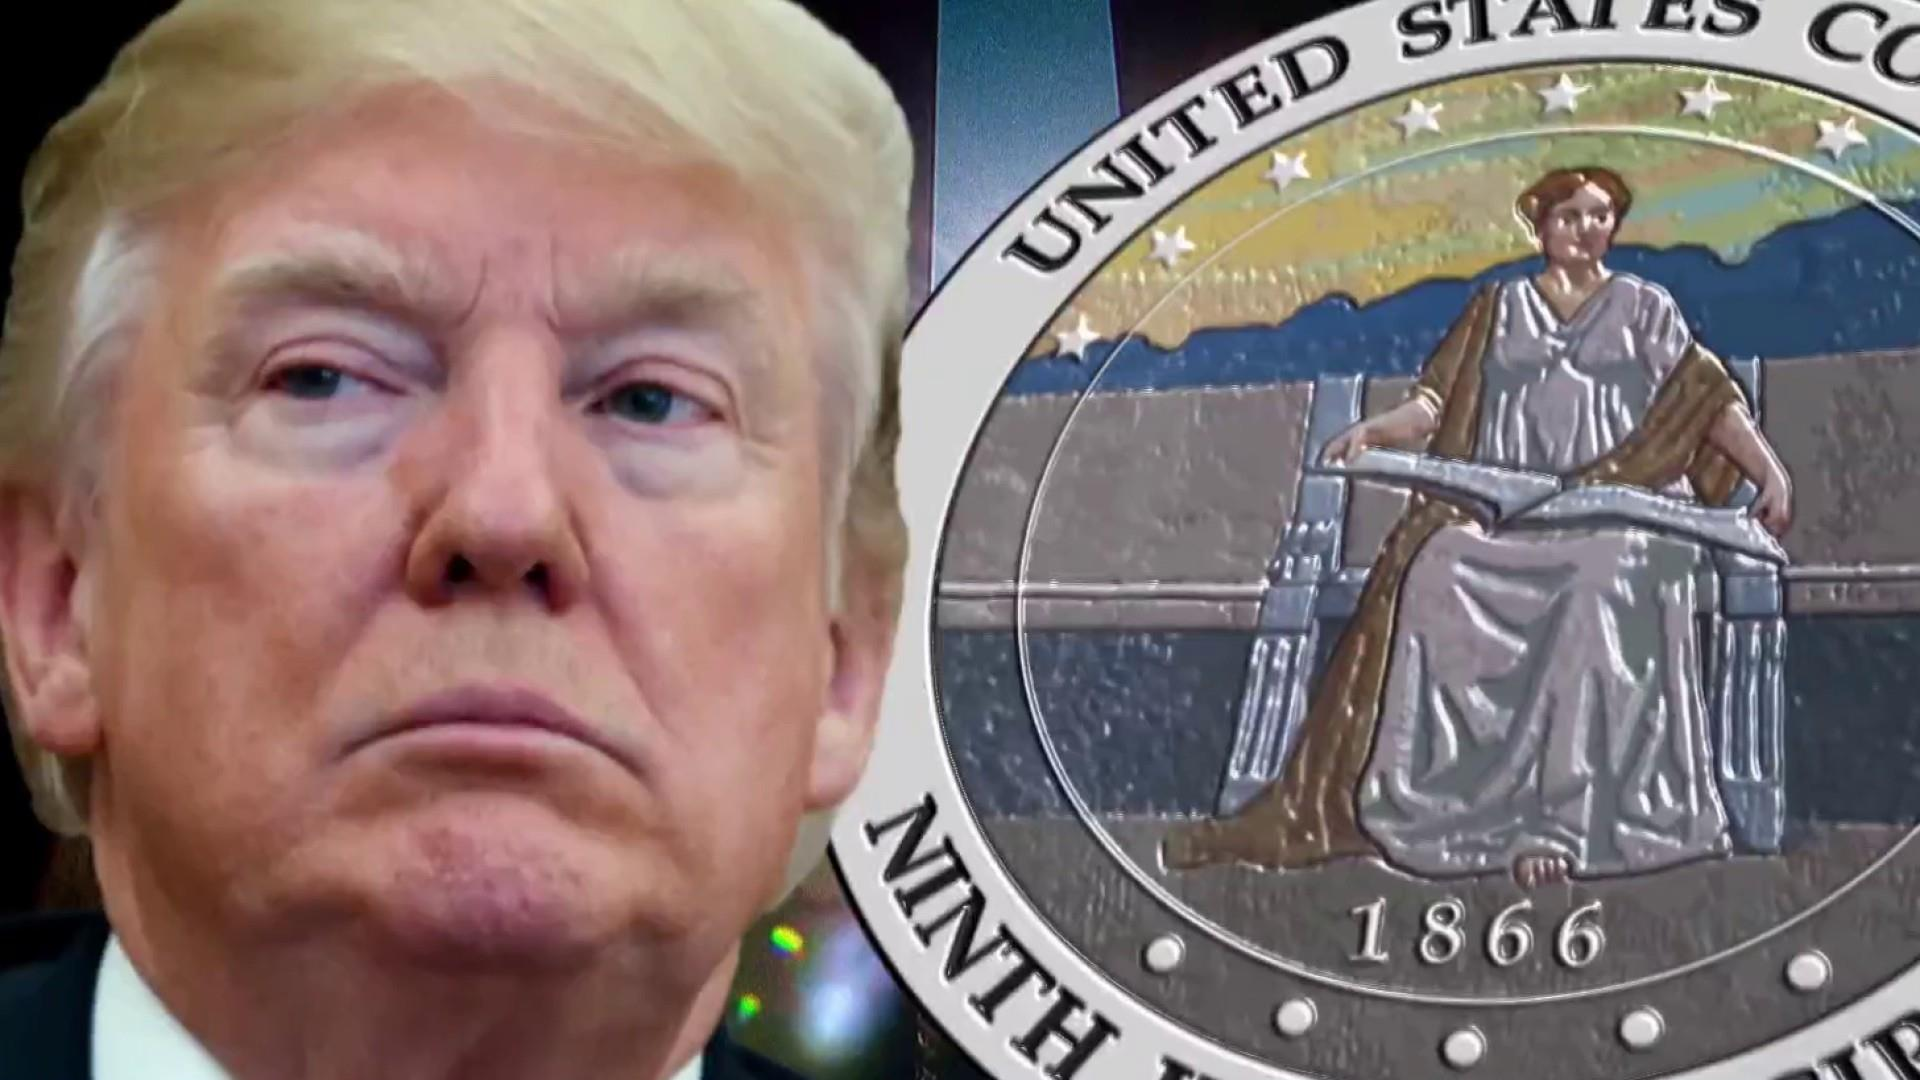 ACLU sues Trump over his national emergency for border wall